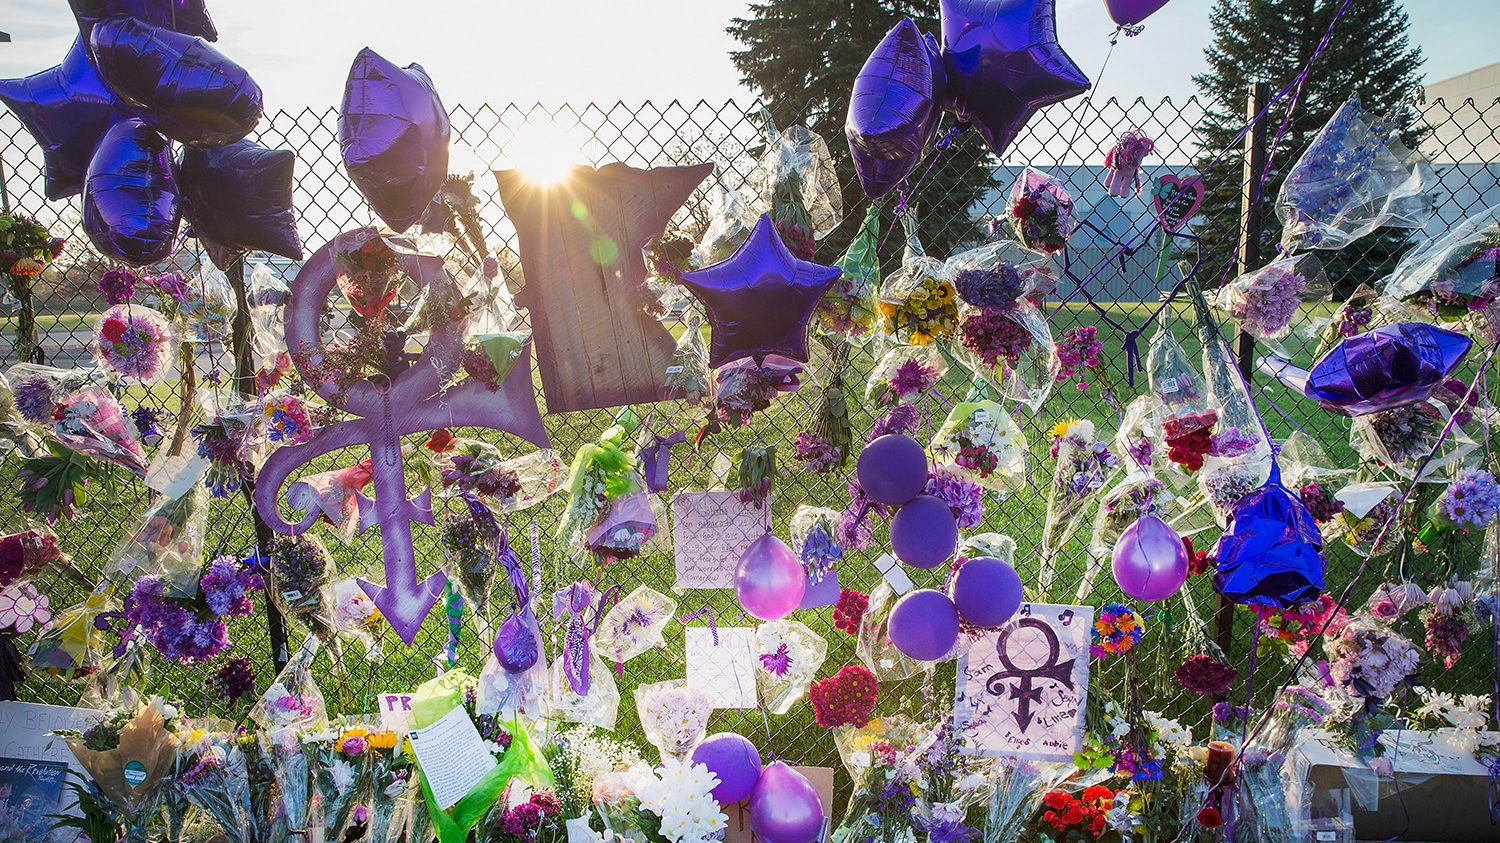 Mementos left by fans are attached to the fence which surrounds Paisley Park, the home and studio of Prince, on April 23, 2016 in Chanhassen, Minnesota. Prince, 57, was pronounced dead shortly after being found unresponsive April 21 in an elevator at Paisley Park.  (Scott Olson/Getty Images)